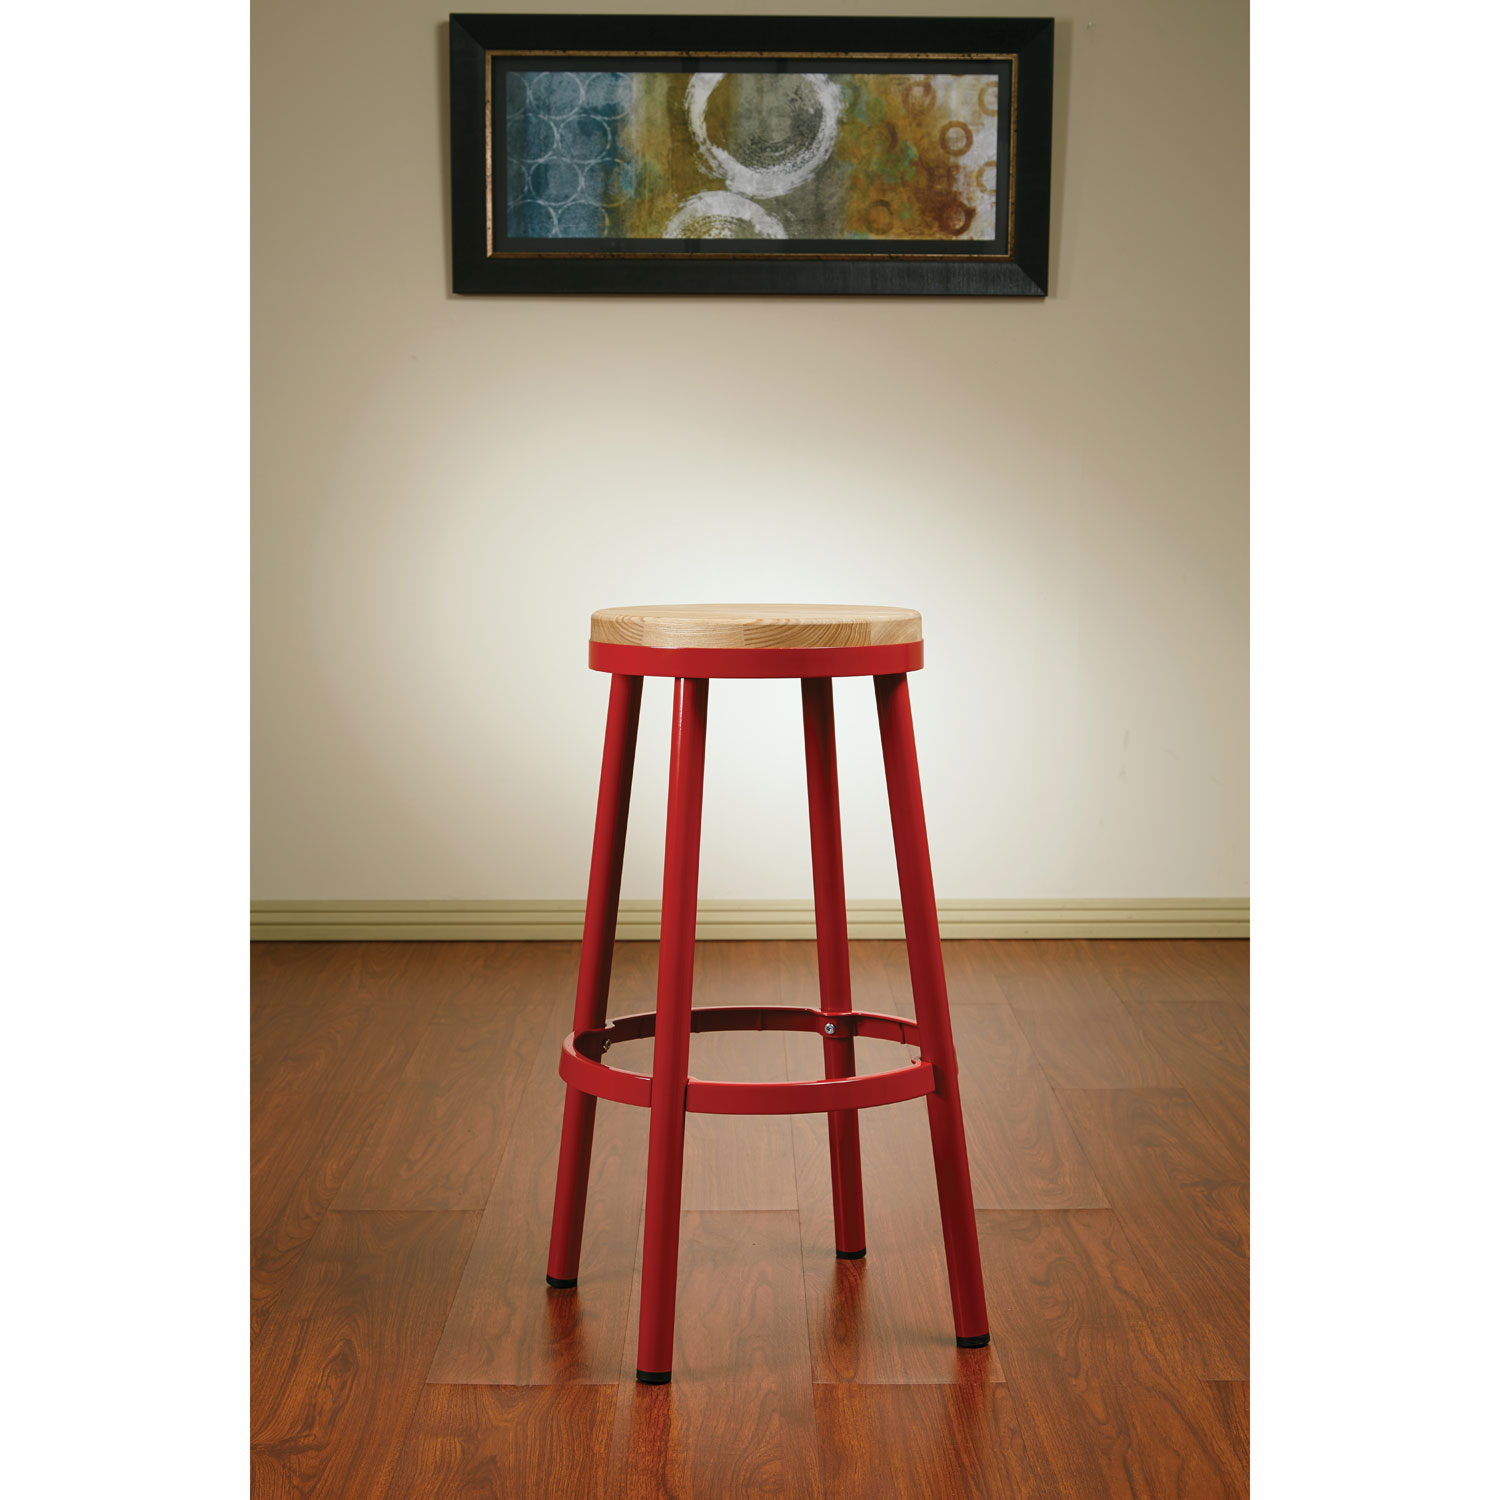 Bristow contemporary bar height bar stool red online only